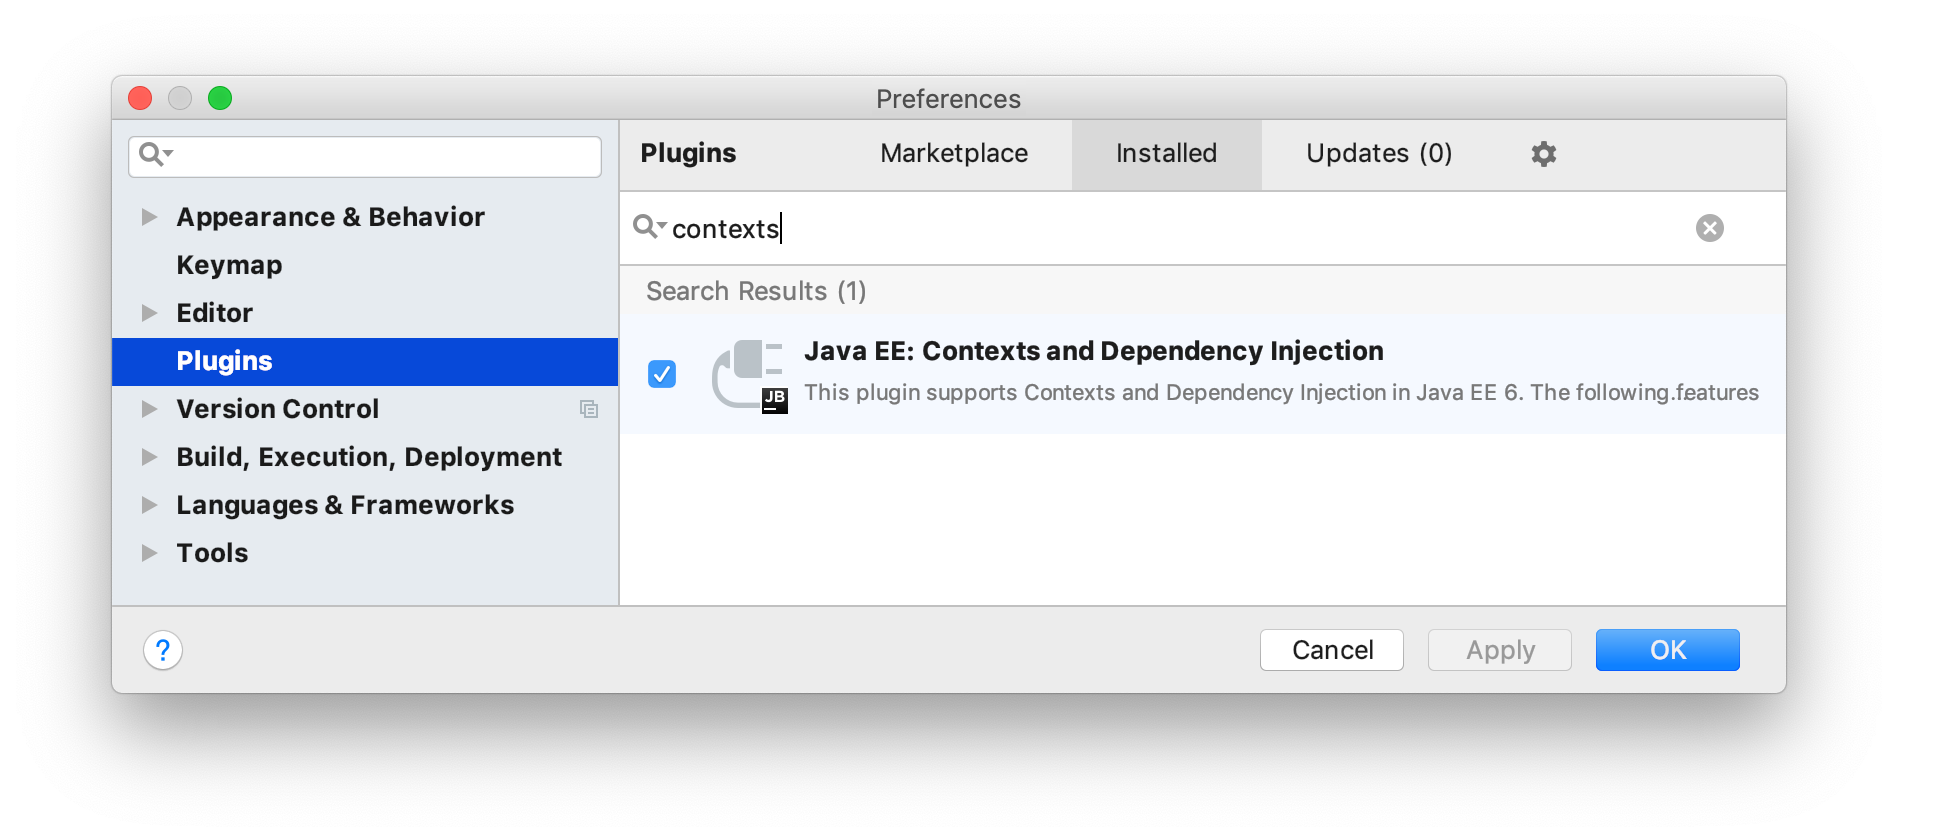 CDI plugin is enabled in the list of plugins